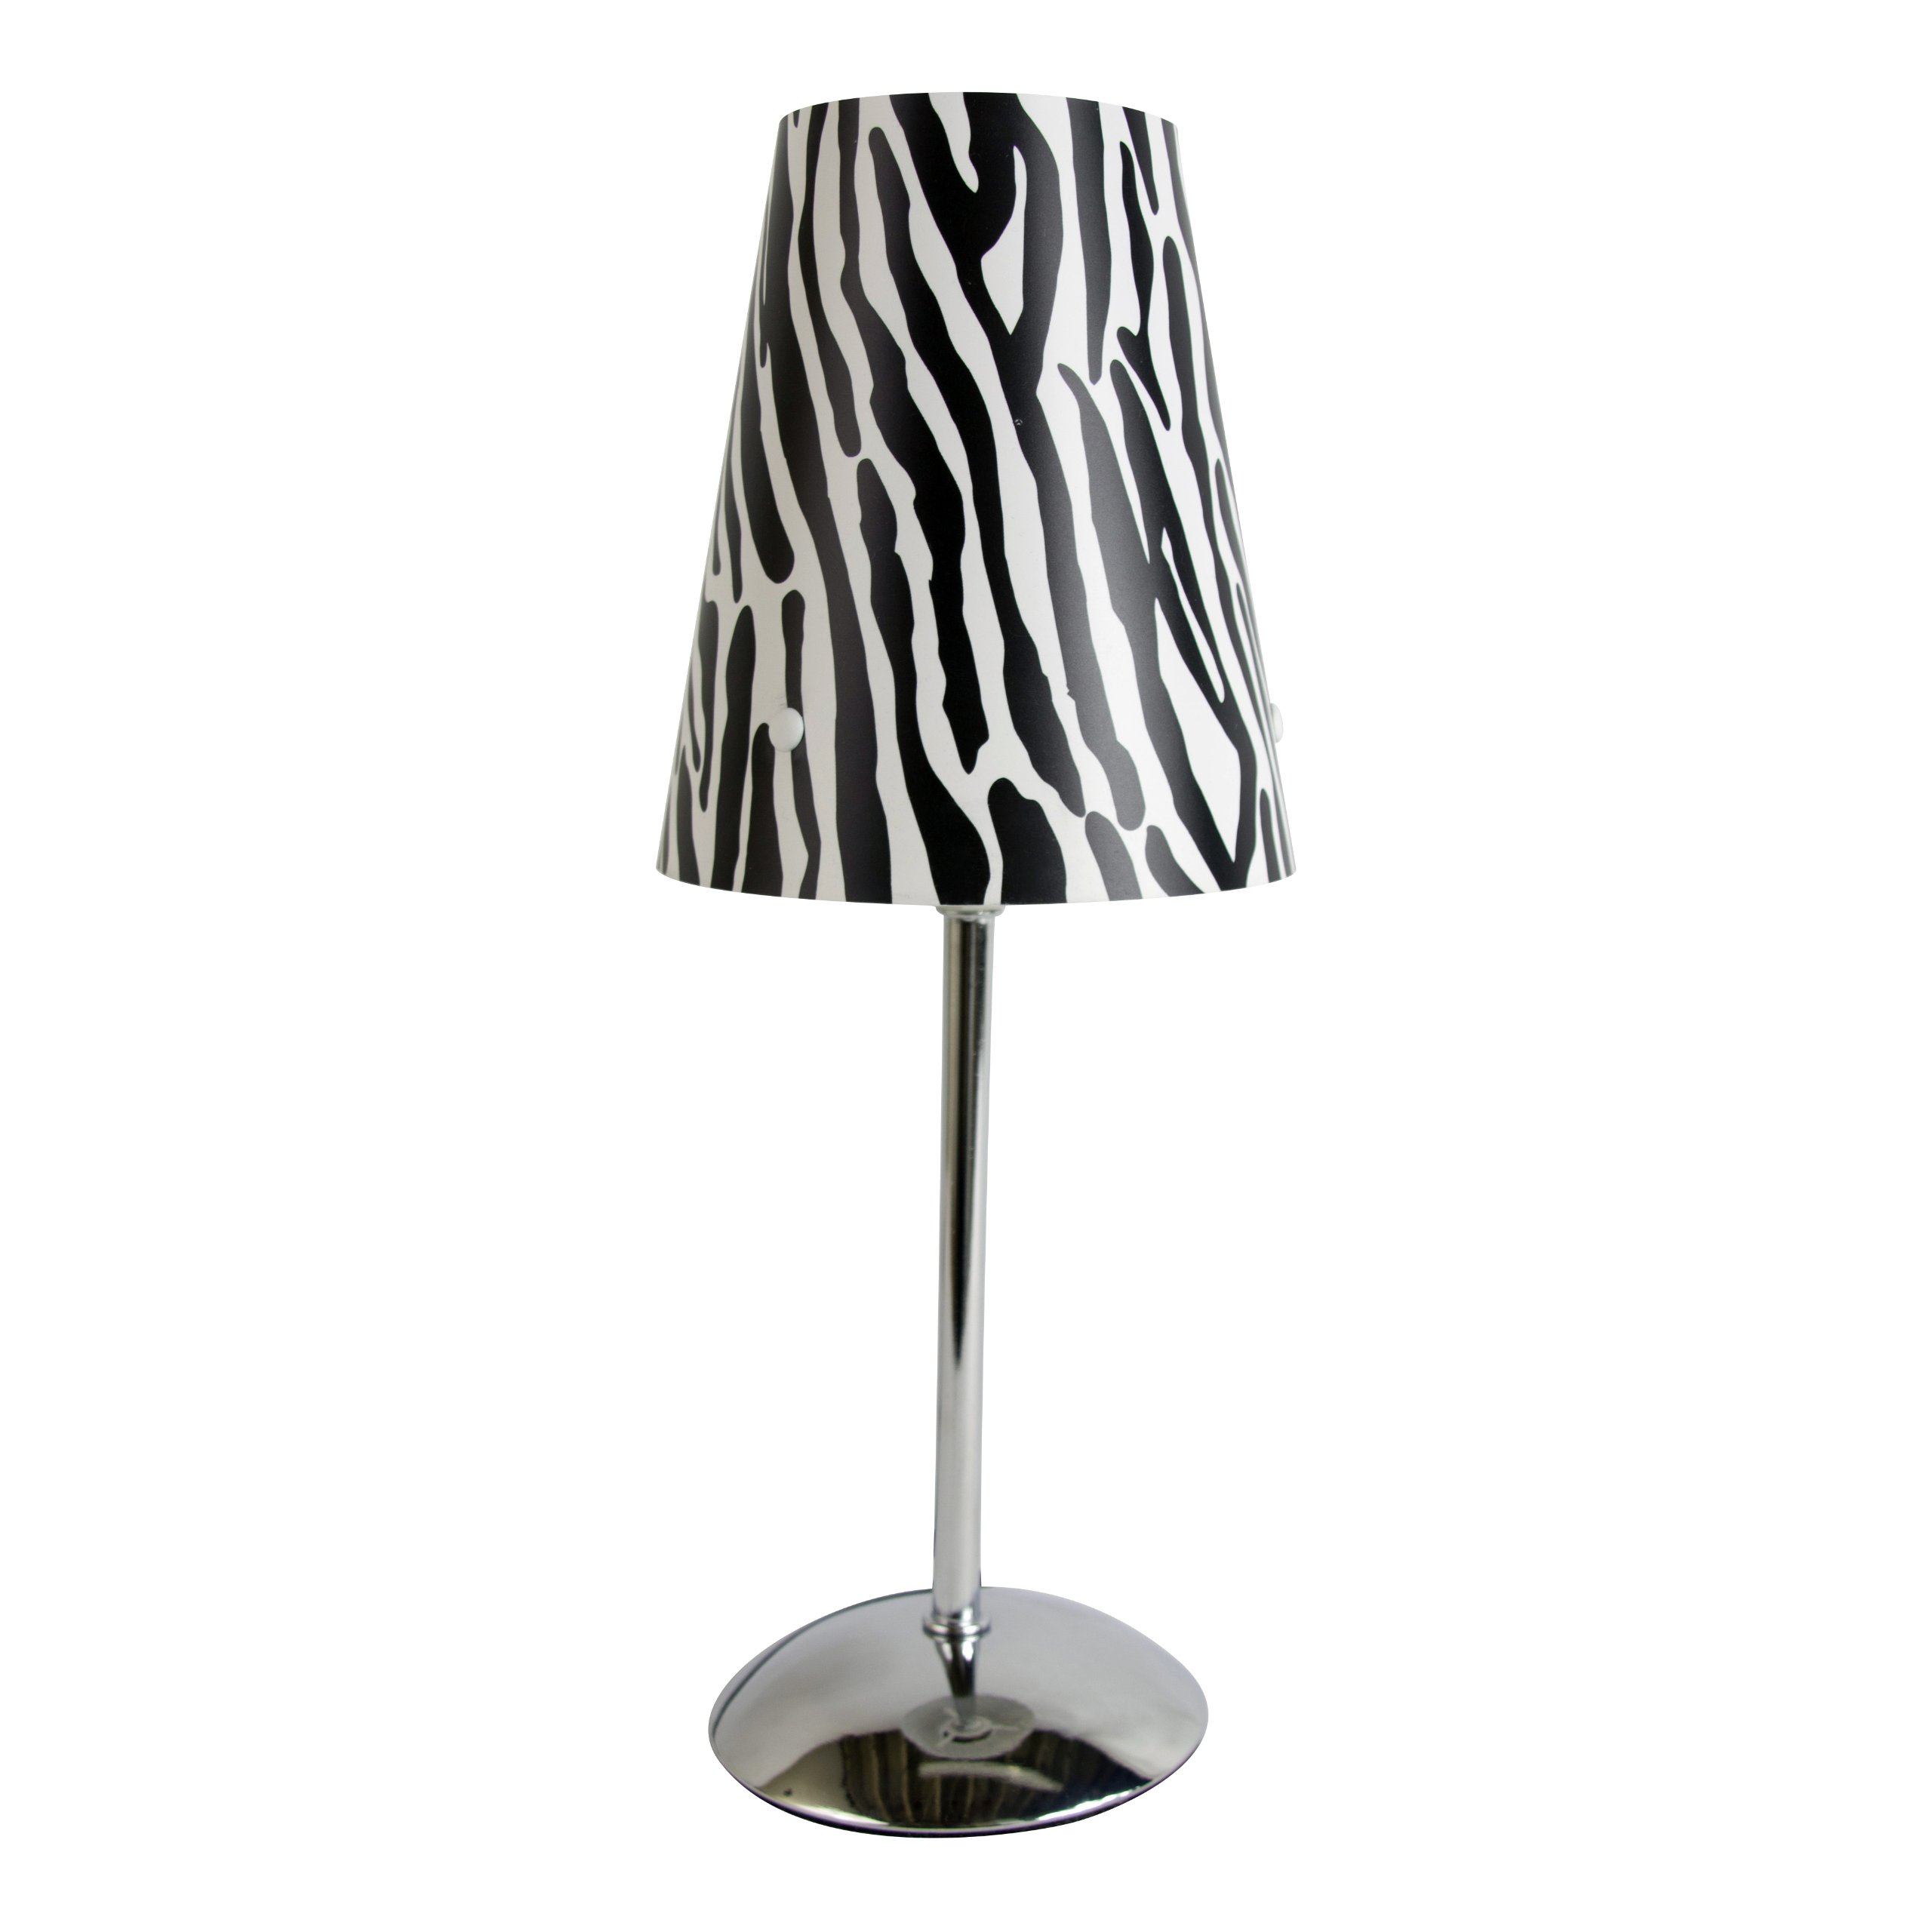 Limelights LT3024-ZBA Mini Silver Table Lamp with Animal Print Shade, 4.92'' x 4.92'' x 11.81'', Zebra